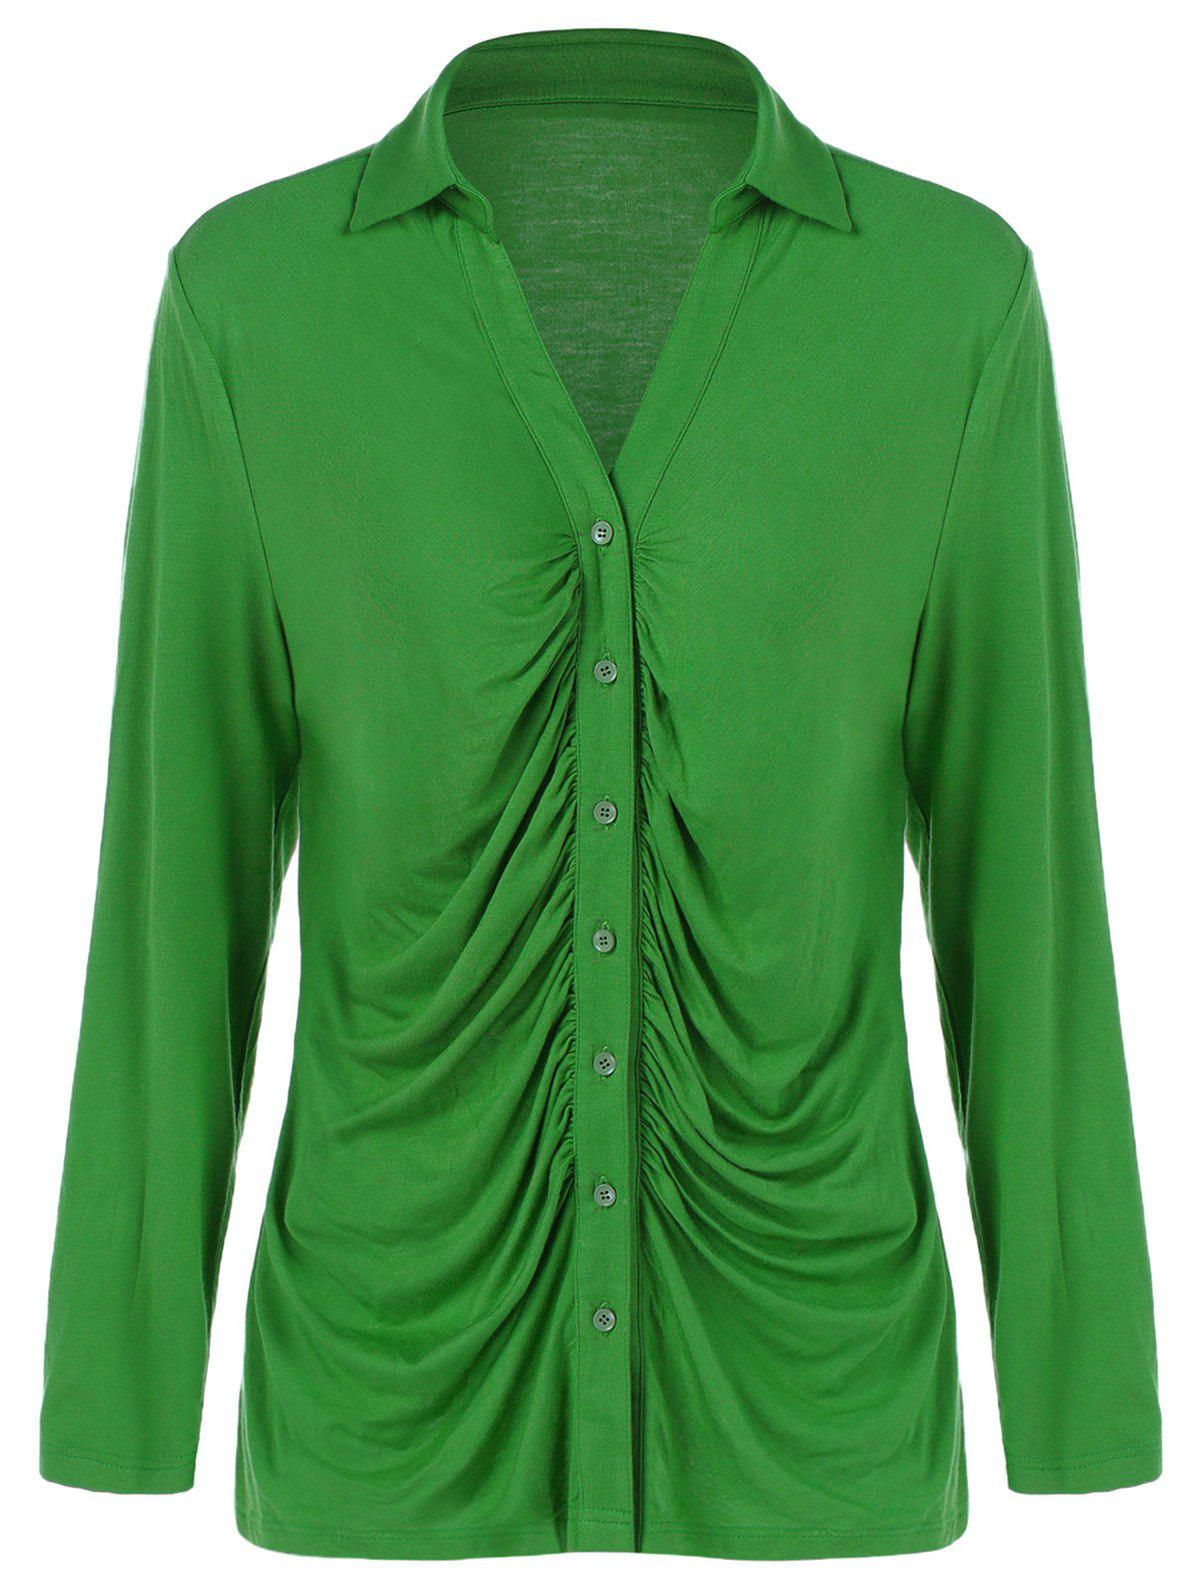 Plus size ruched shirt apple green xl in plus size tops for Apple green dress shirt